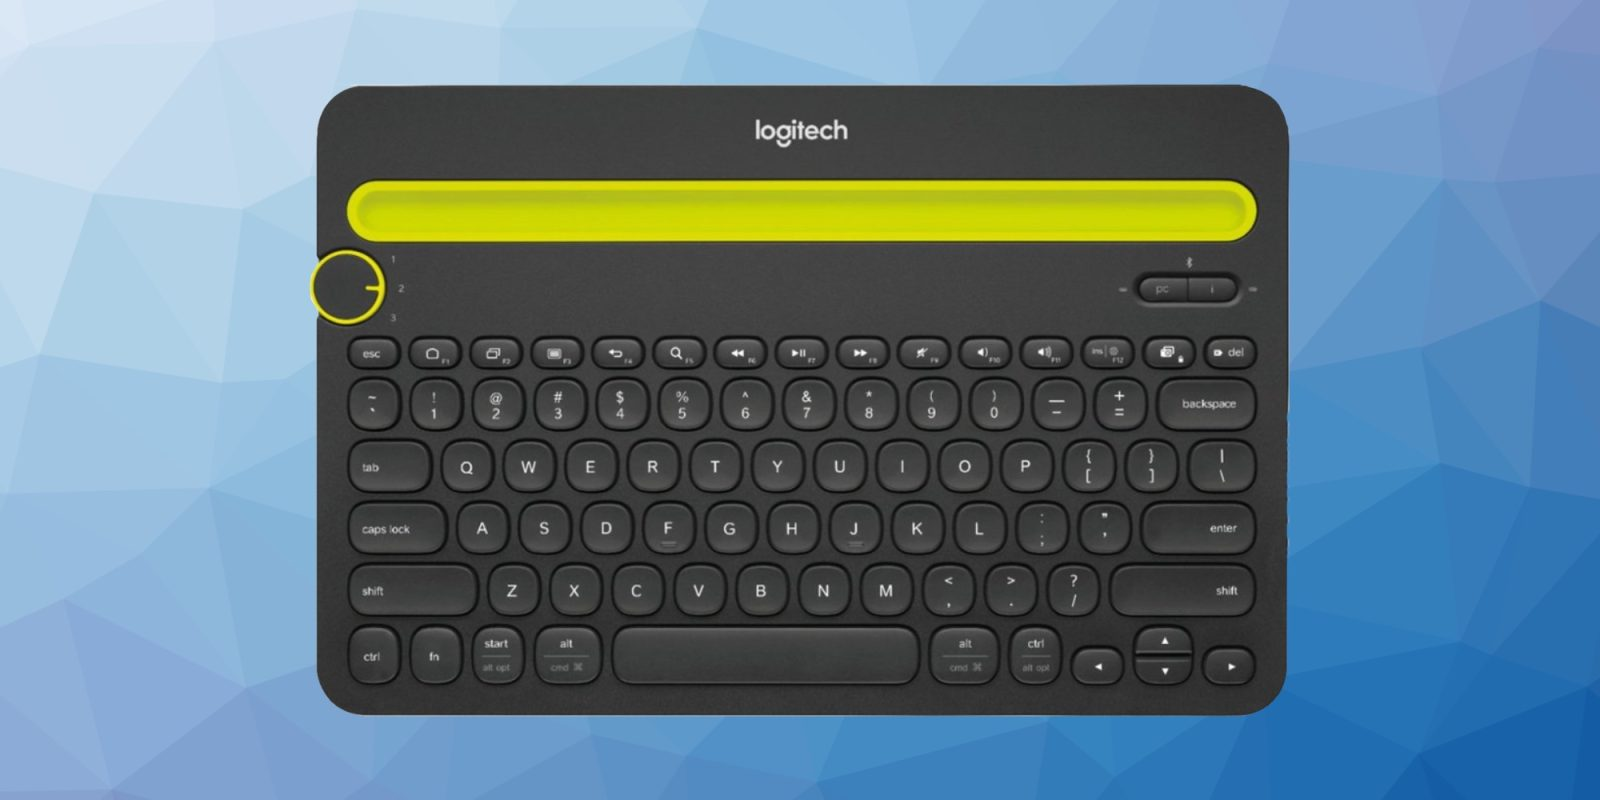 Pair a MacBook, iPad, and more with Logitech's Multidevice Keyboard at $20